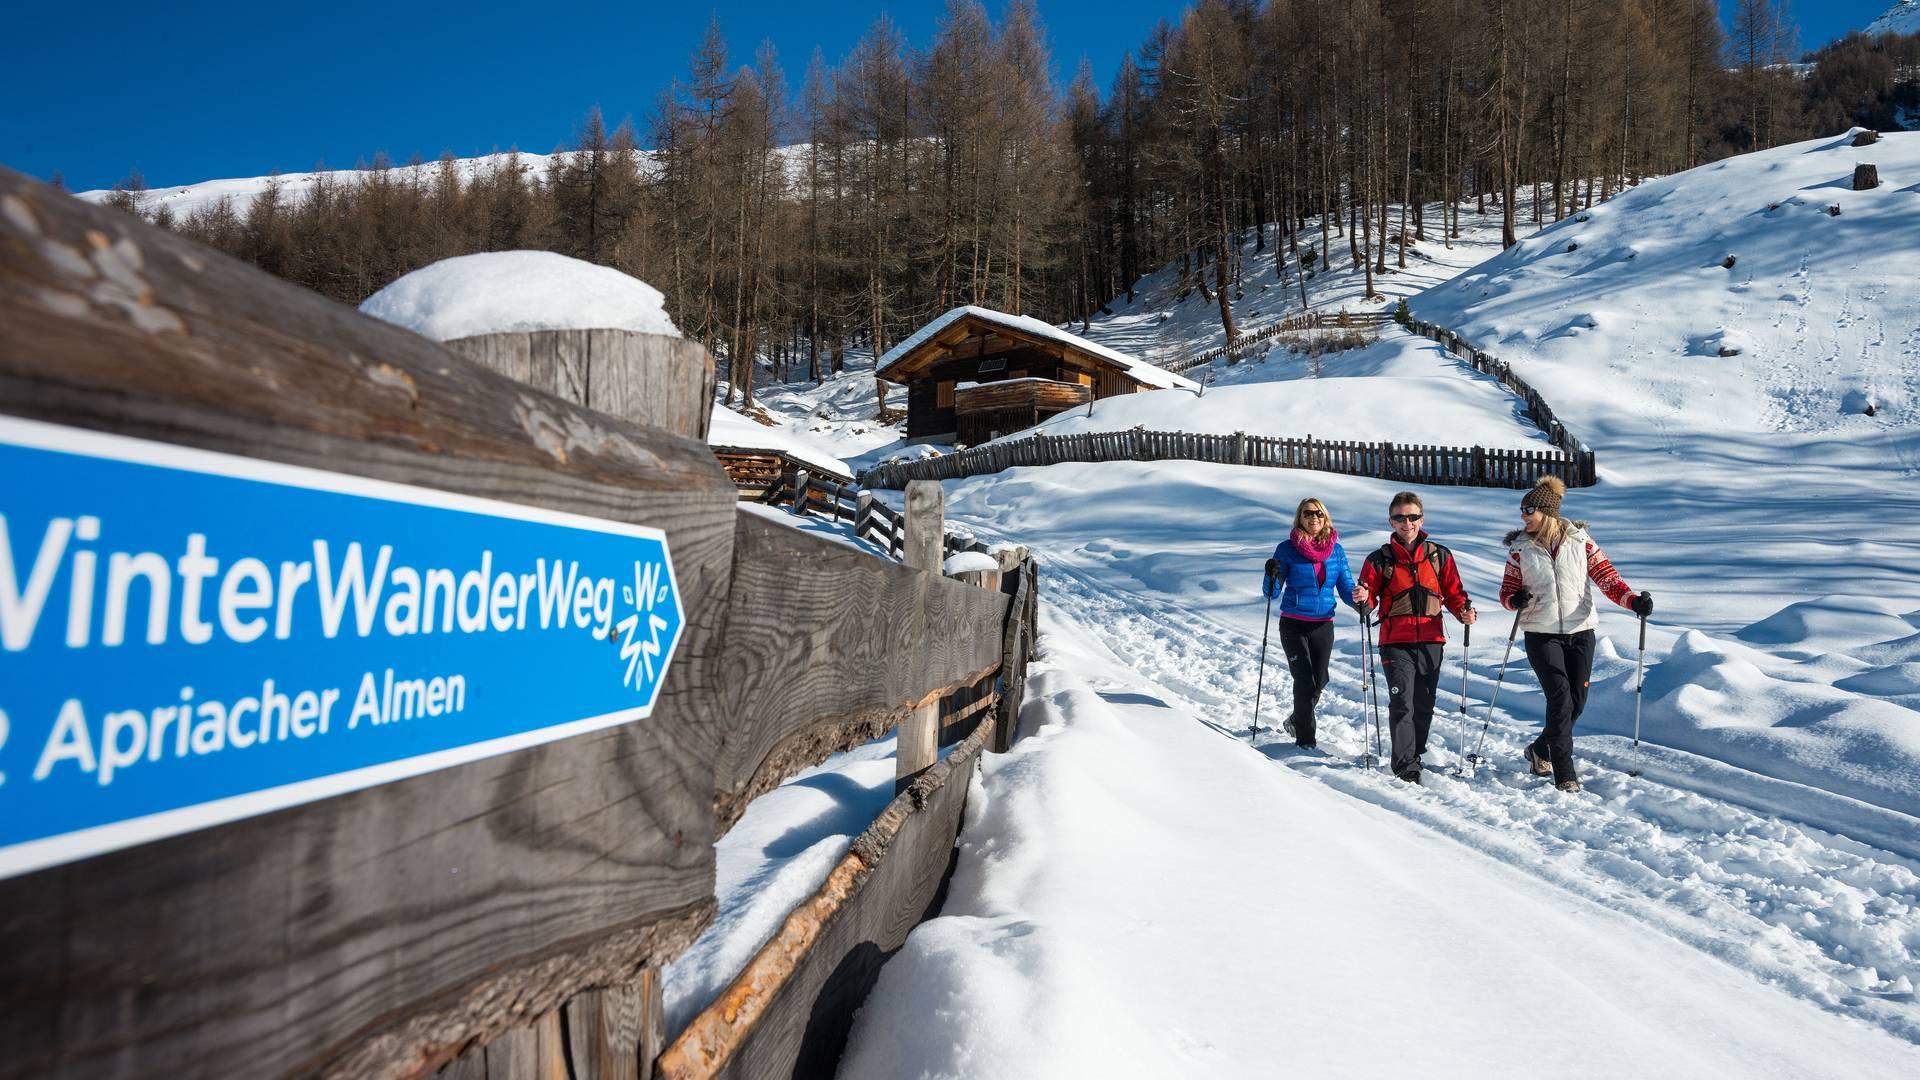 Winterwandern in Apriach